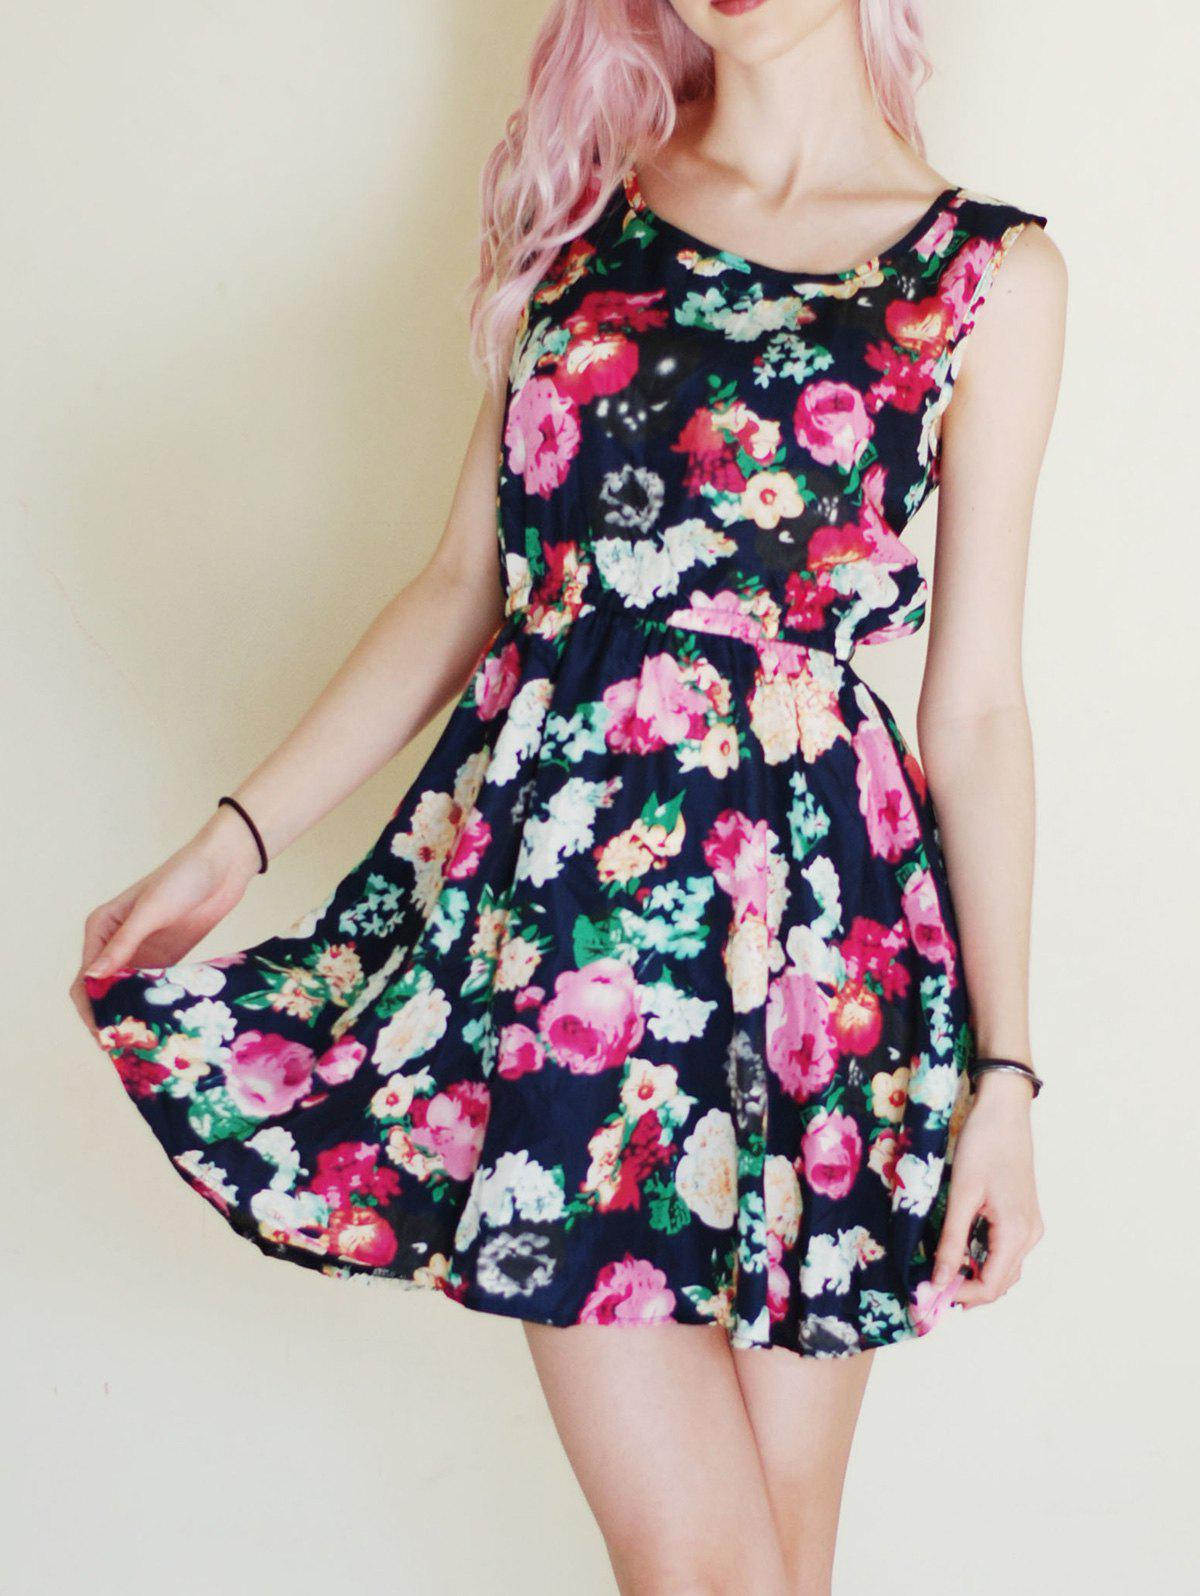 Scoop Collar Sleeveless Floral Print Chic A-Line Chiffon Women's Dress